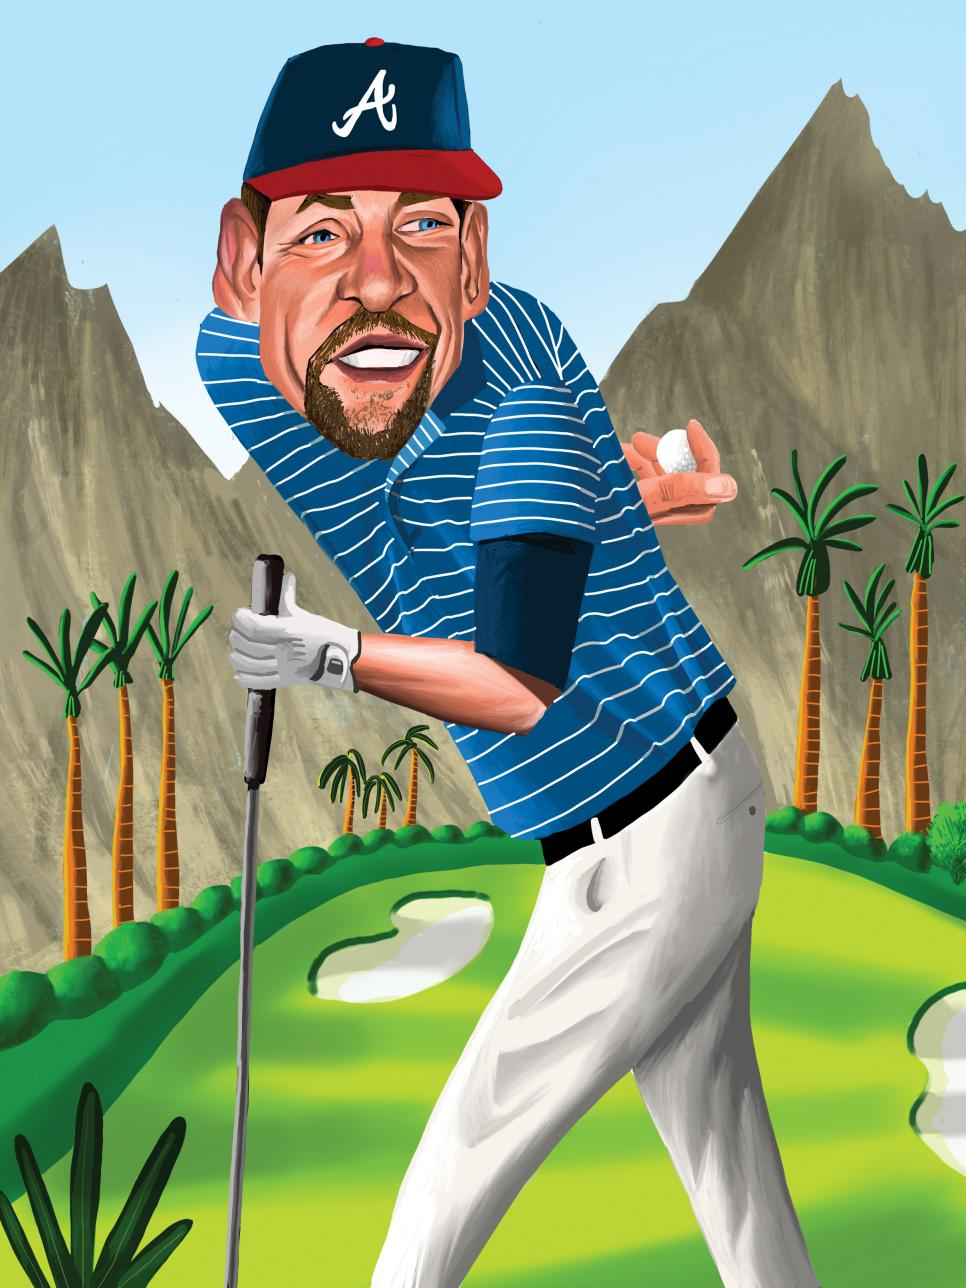 Top-Athlete-Golfers-John-Smoltz.jpg